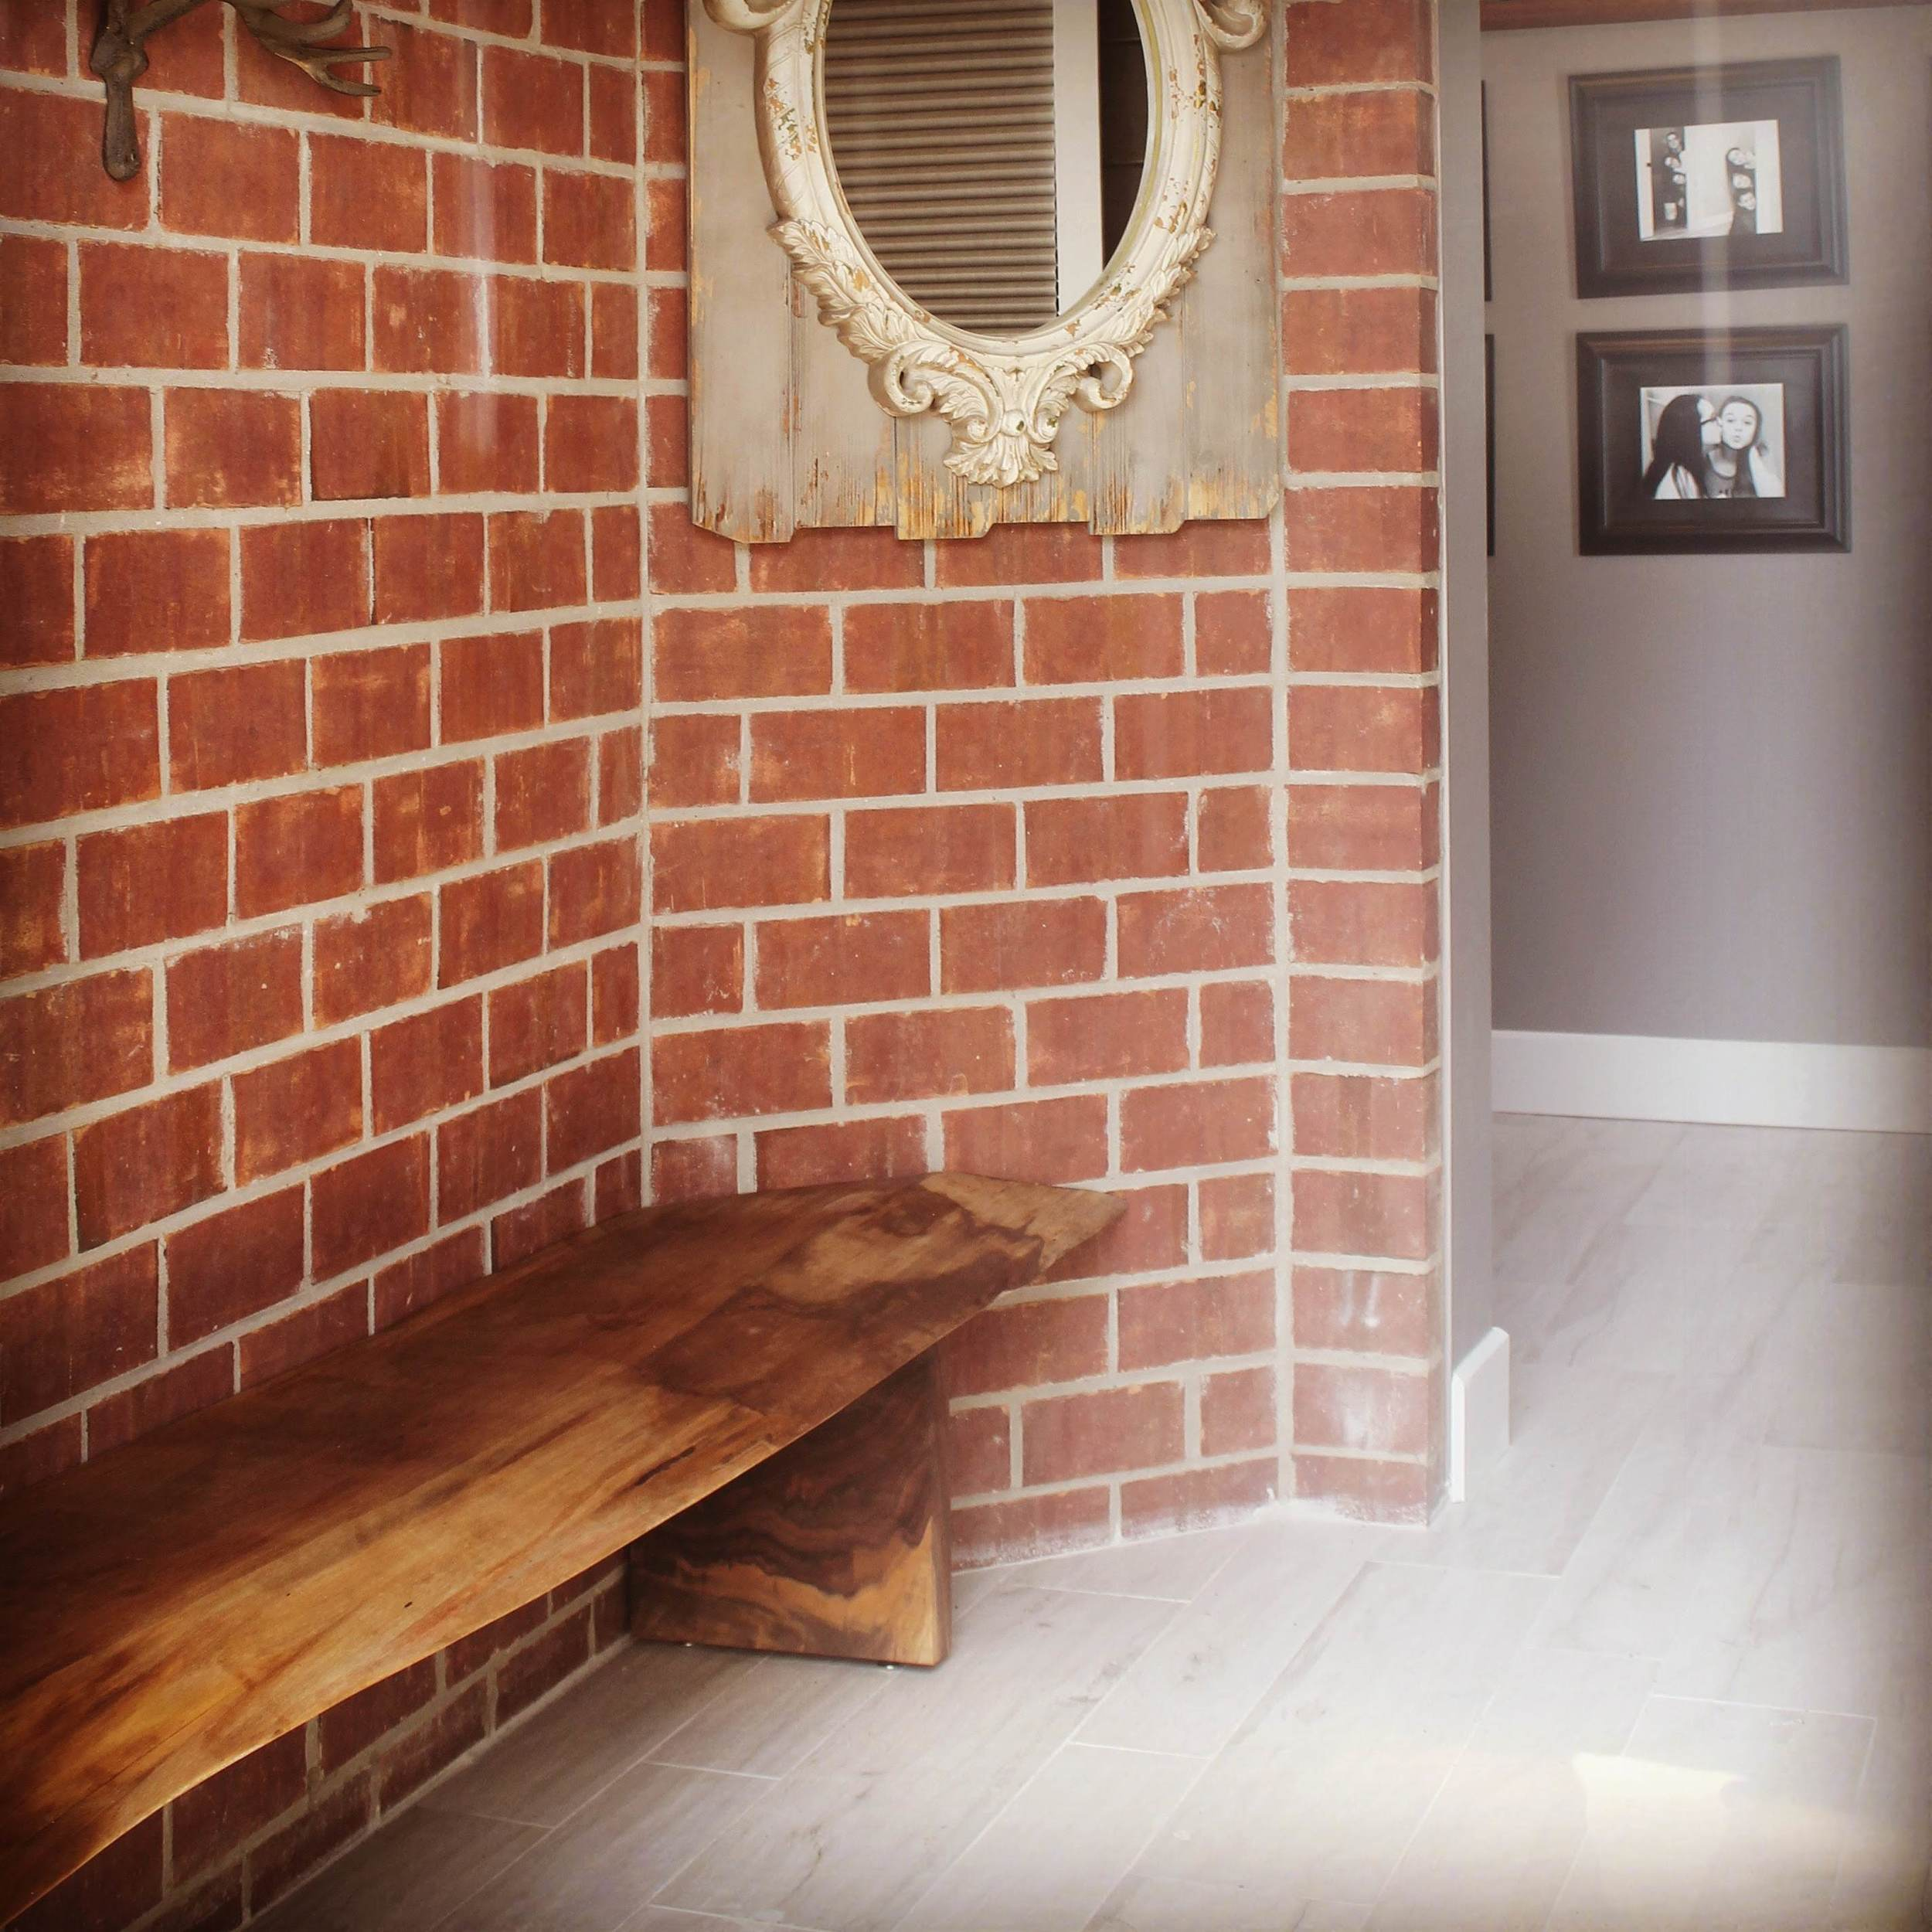 Live edge black walnut bench